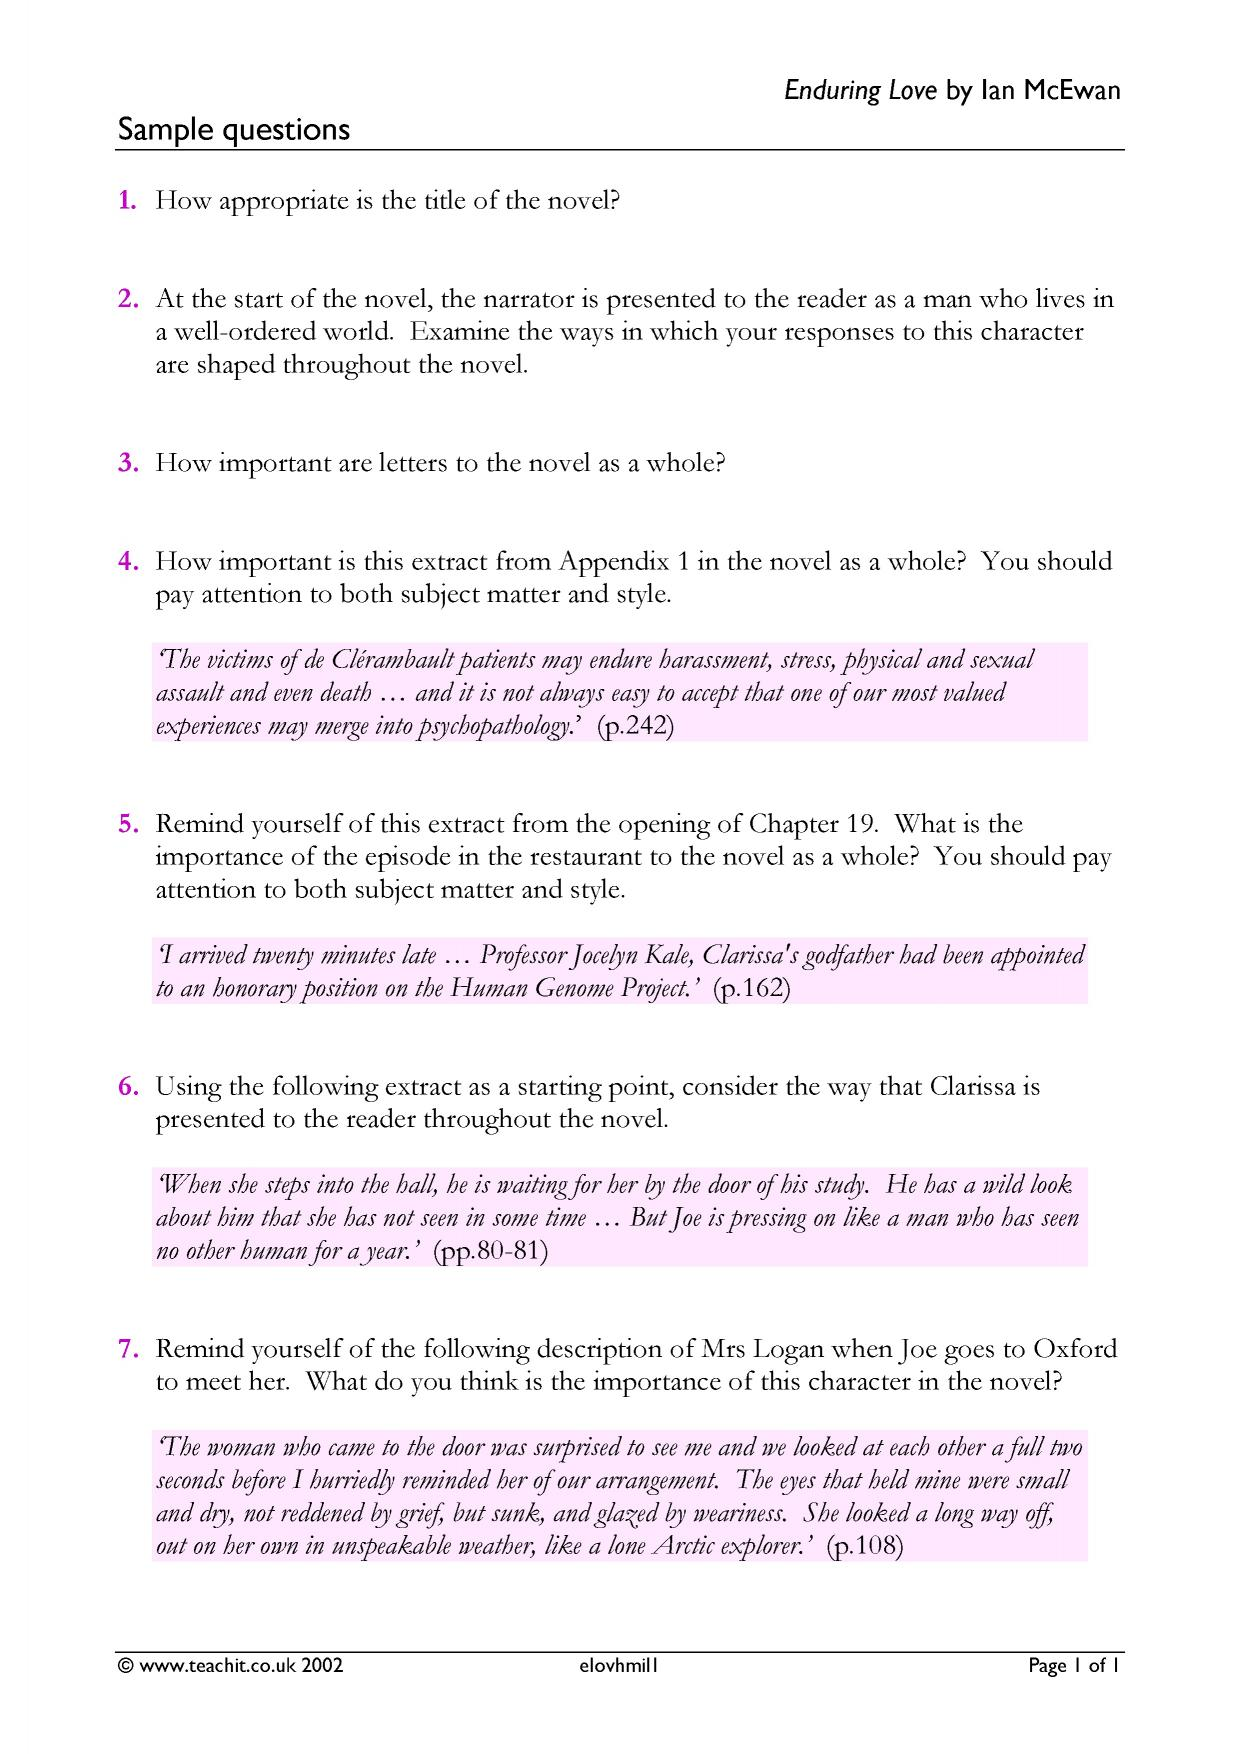 'A' LEVEL REVISION NOTES FOR ENDURING LOVE BY IAN MCEWAN PT 19